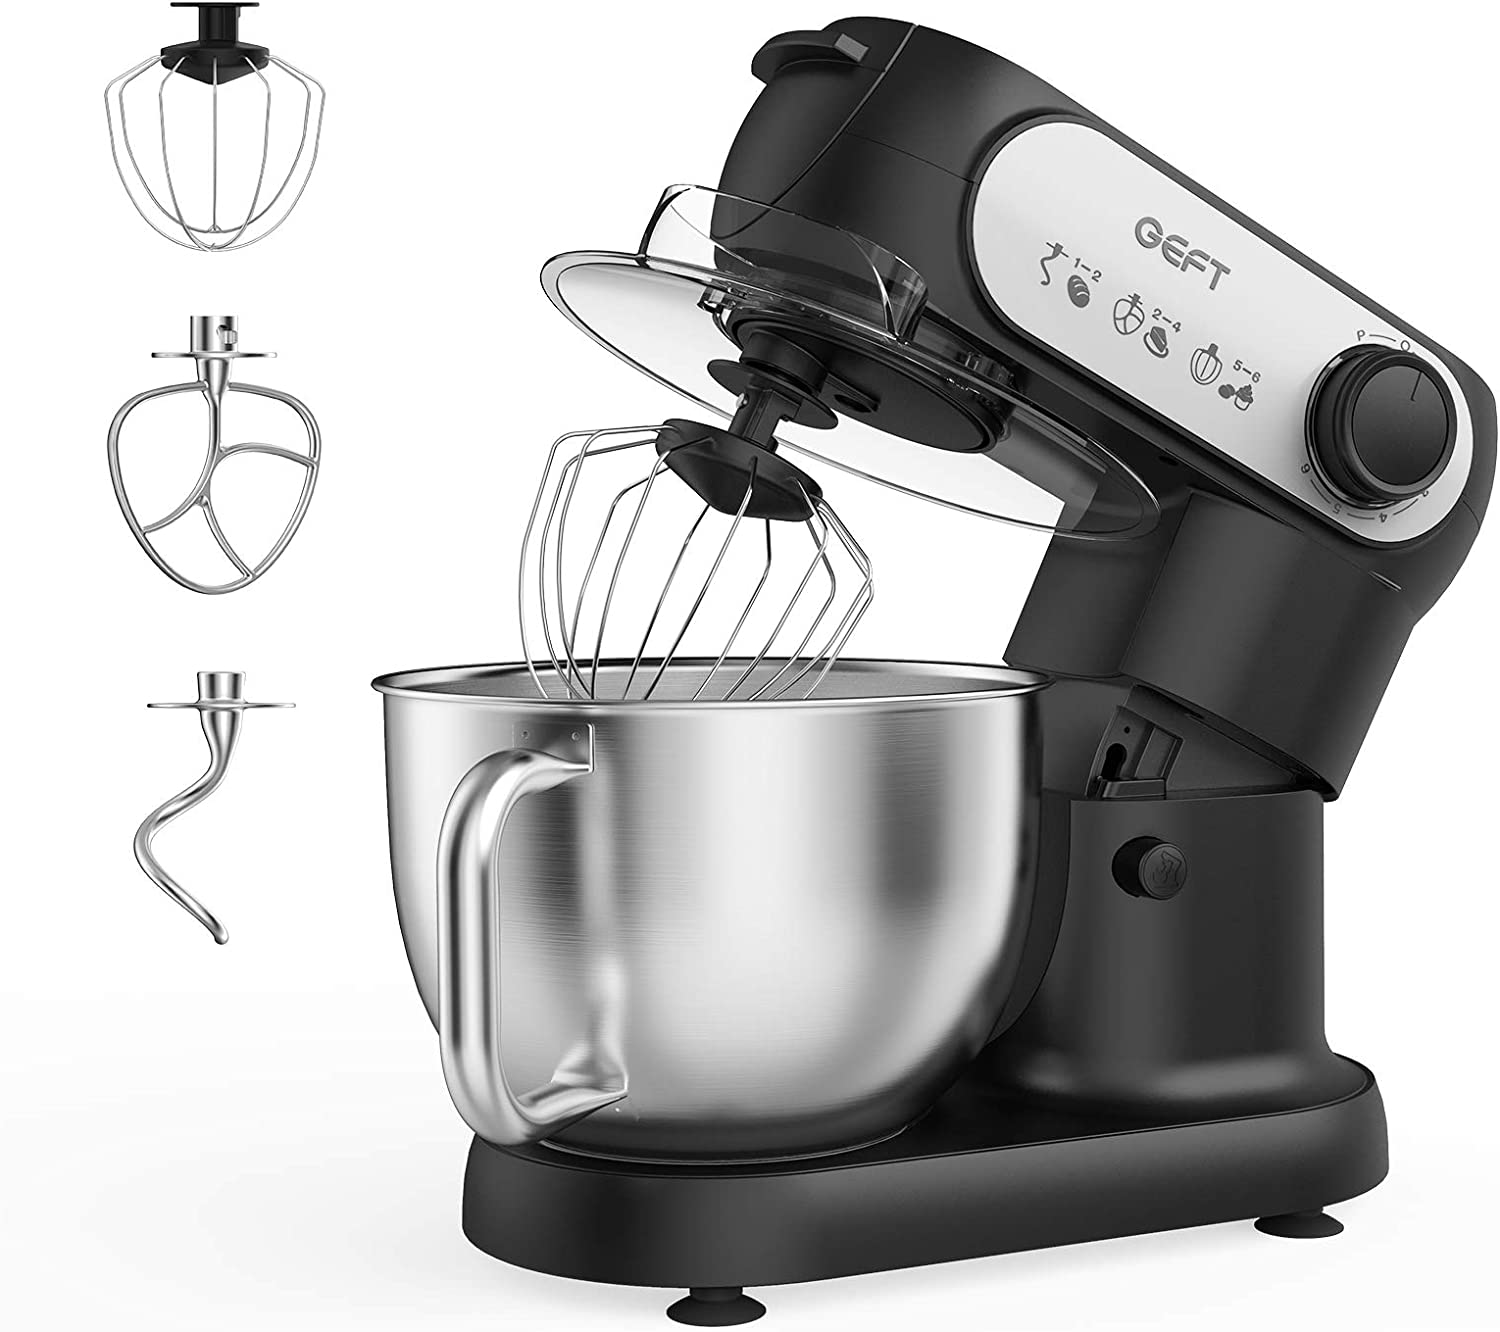 Stand Mixer- GEFT 5.8-QT 6-Speed Kitchen Mixer with 600W Powerful Motor, Electric Food Mixer with Stainless Steel Mixing Bowl & Splash Guard, Dough Hook, Mixing Beater, Wire Whisk, Tilt-Head